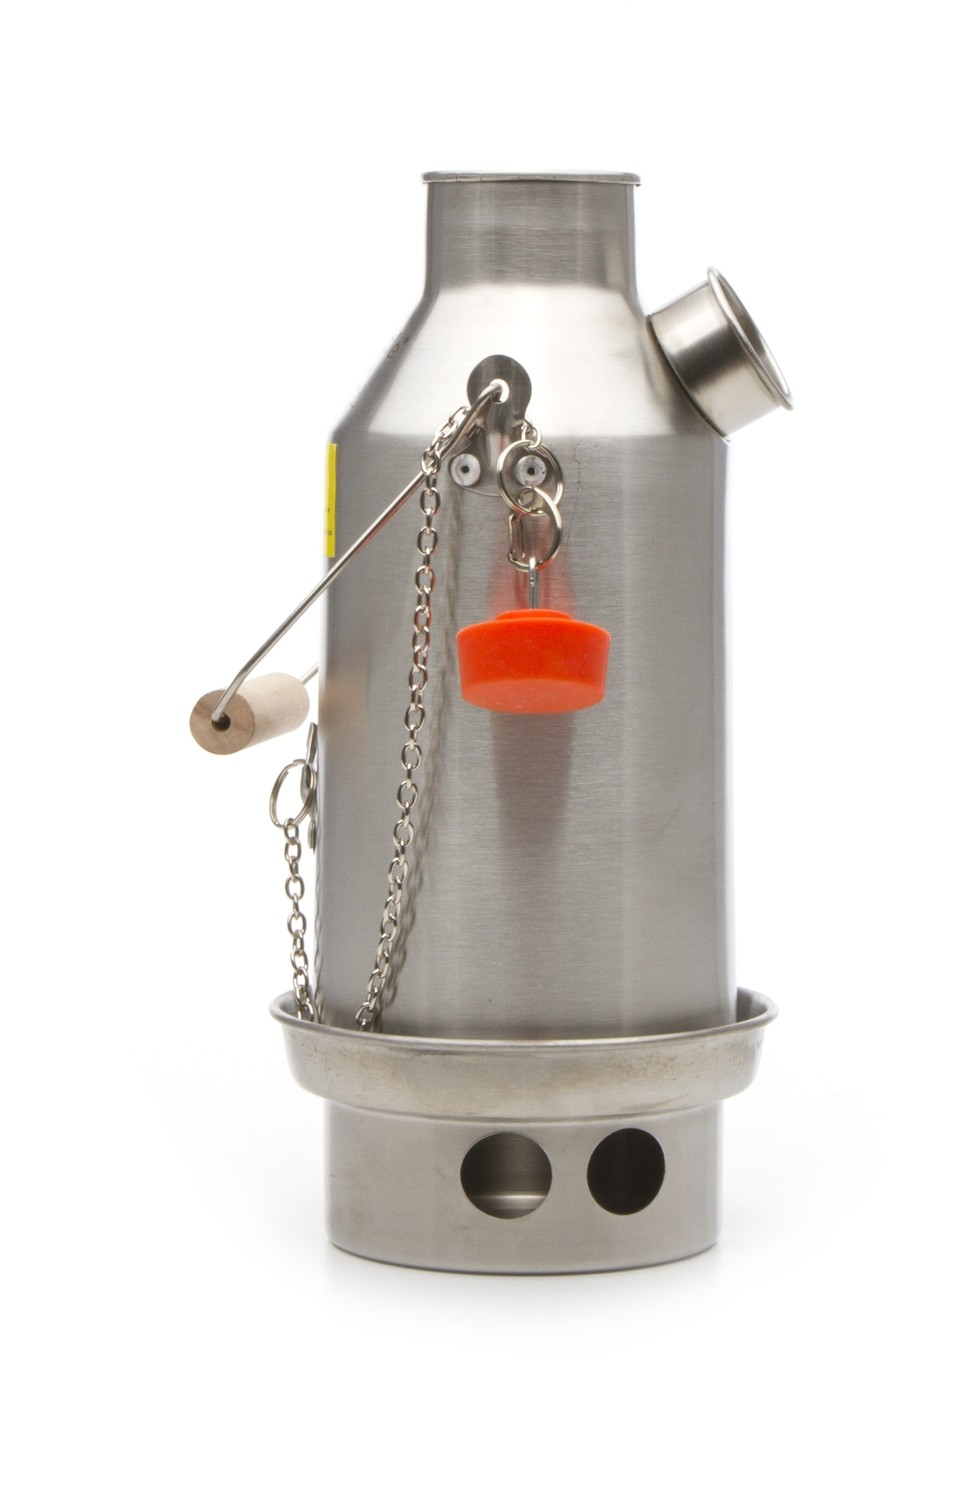 Trekker kettle (0.6ltr) / Stainless Steel model